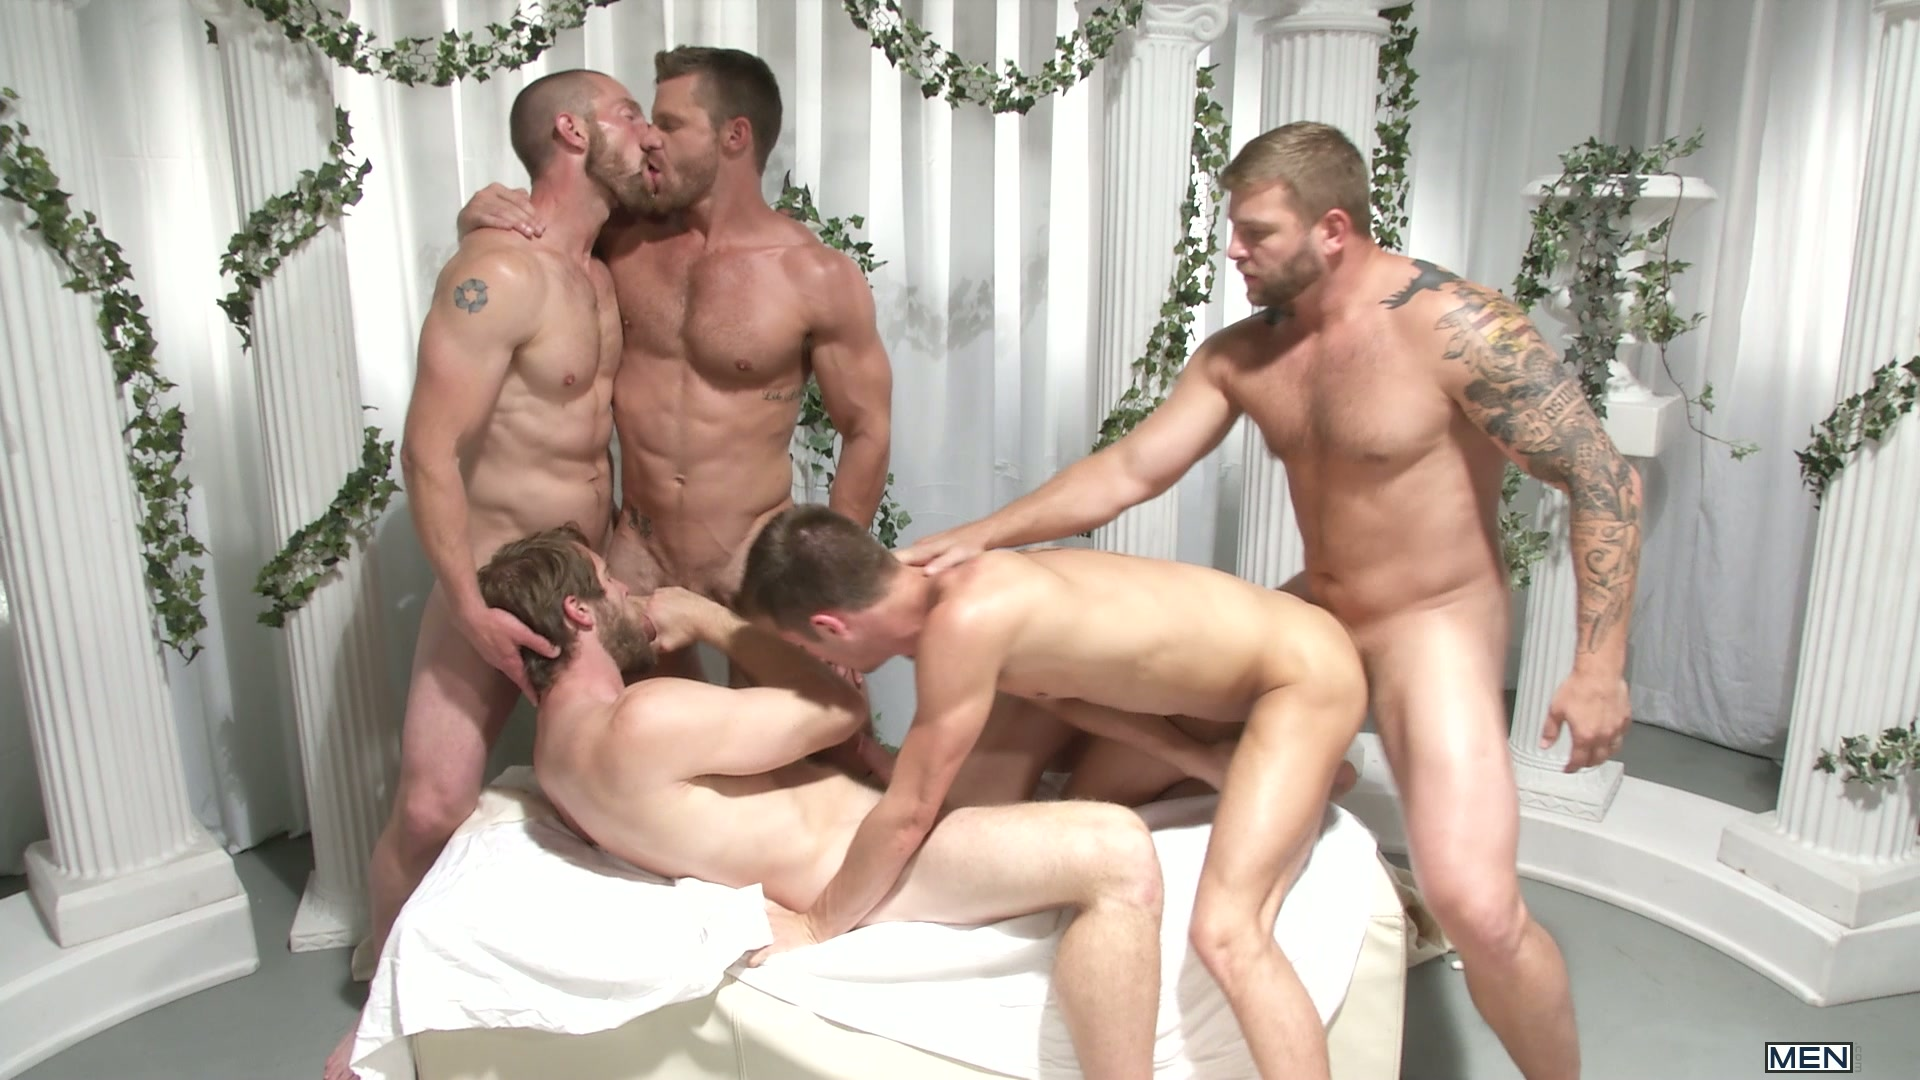 Watch Sex Traveler Part 3 – Jo – Jizz Orgy – Colby Keller Colby Jansen – Adam Herst – Jd Phoenix And Landon Conrad (MEN.COM) Gay Porn Tube Videos Gifs And Free XXX HD Sex Movies Photos Online